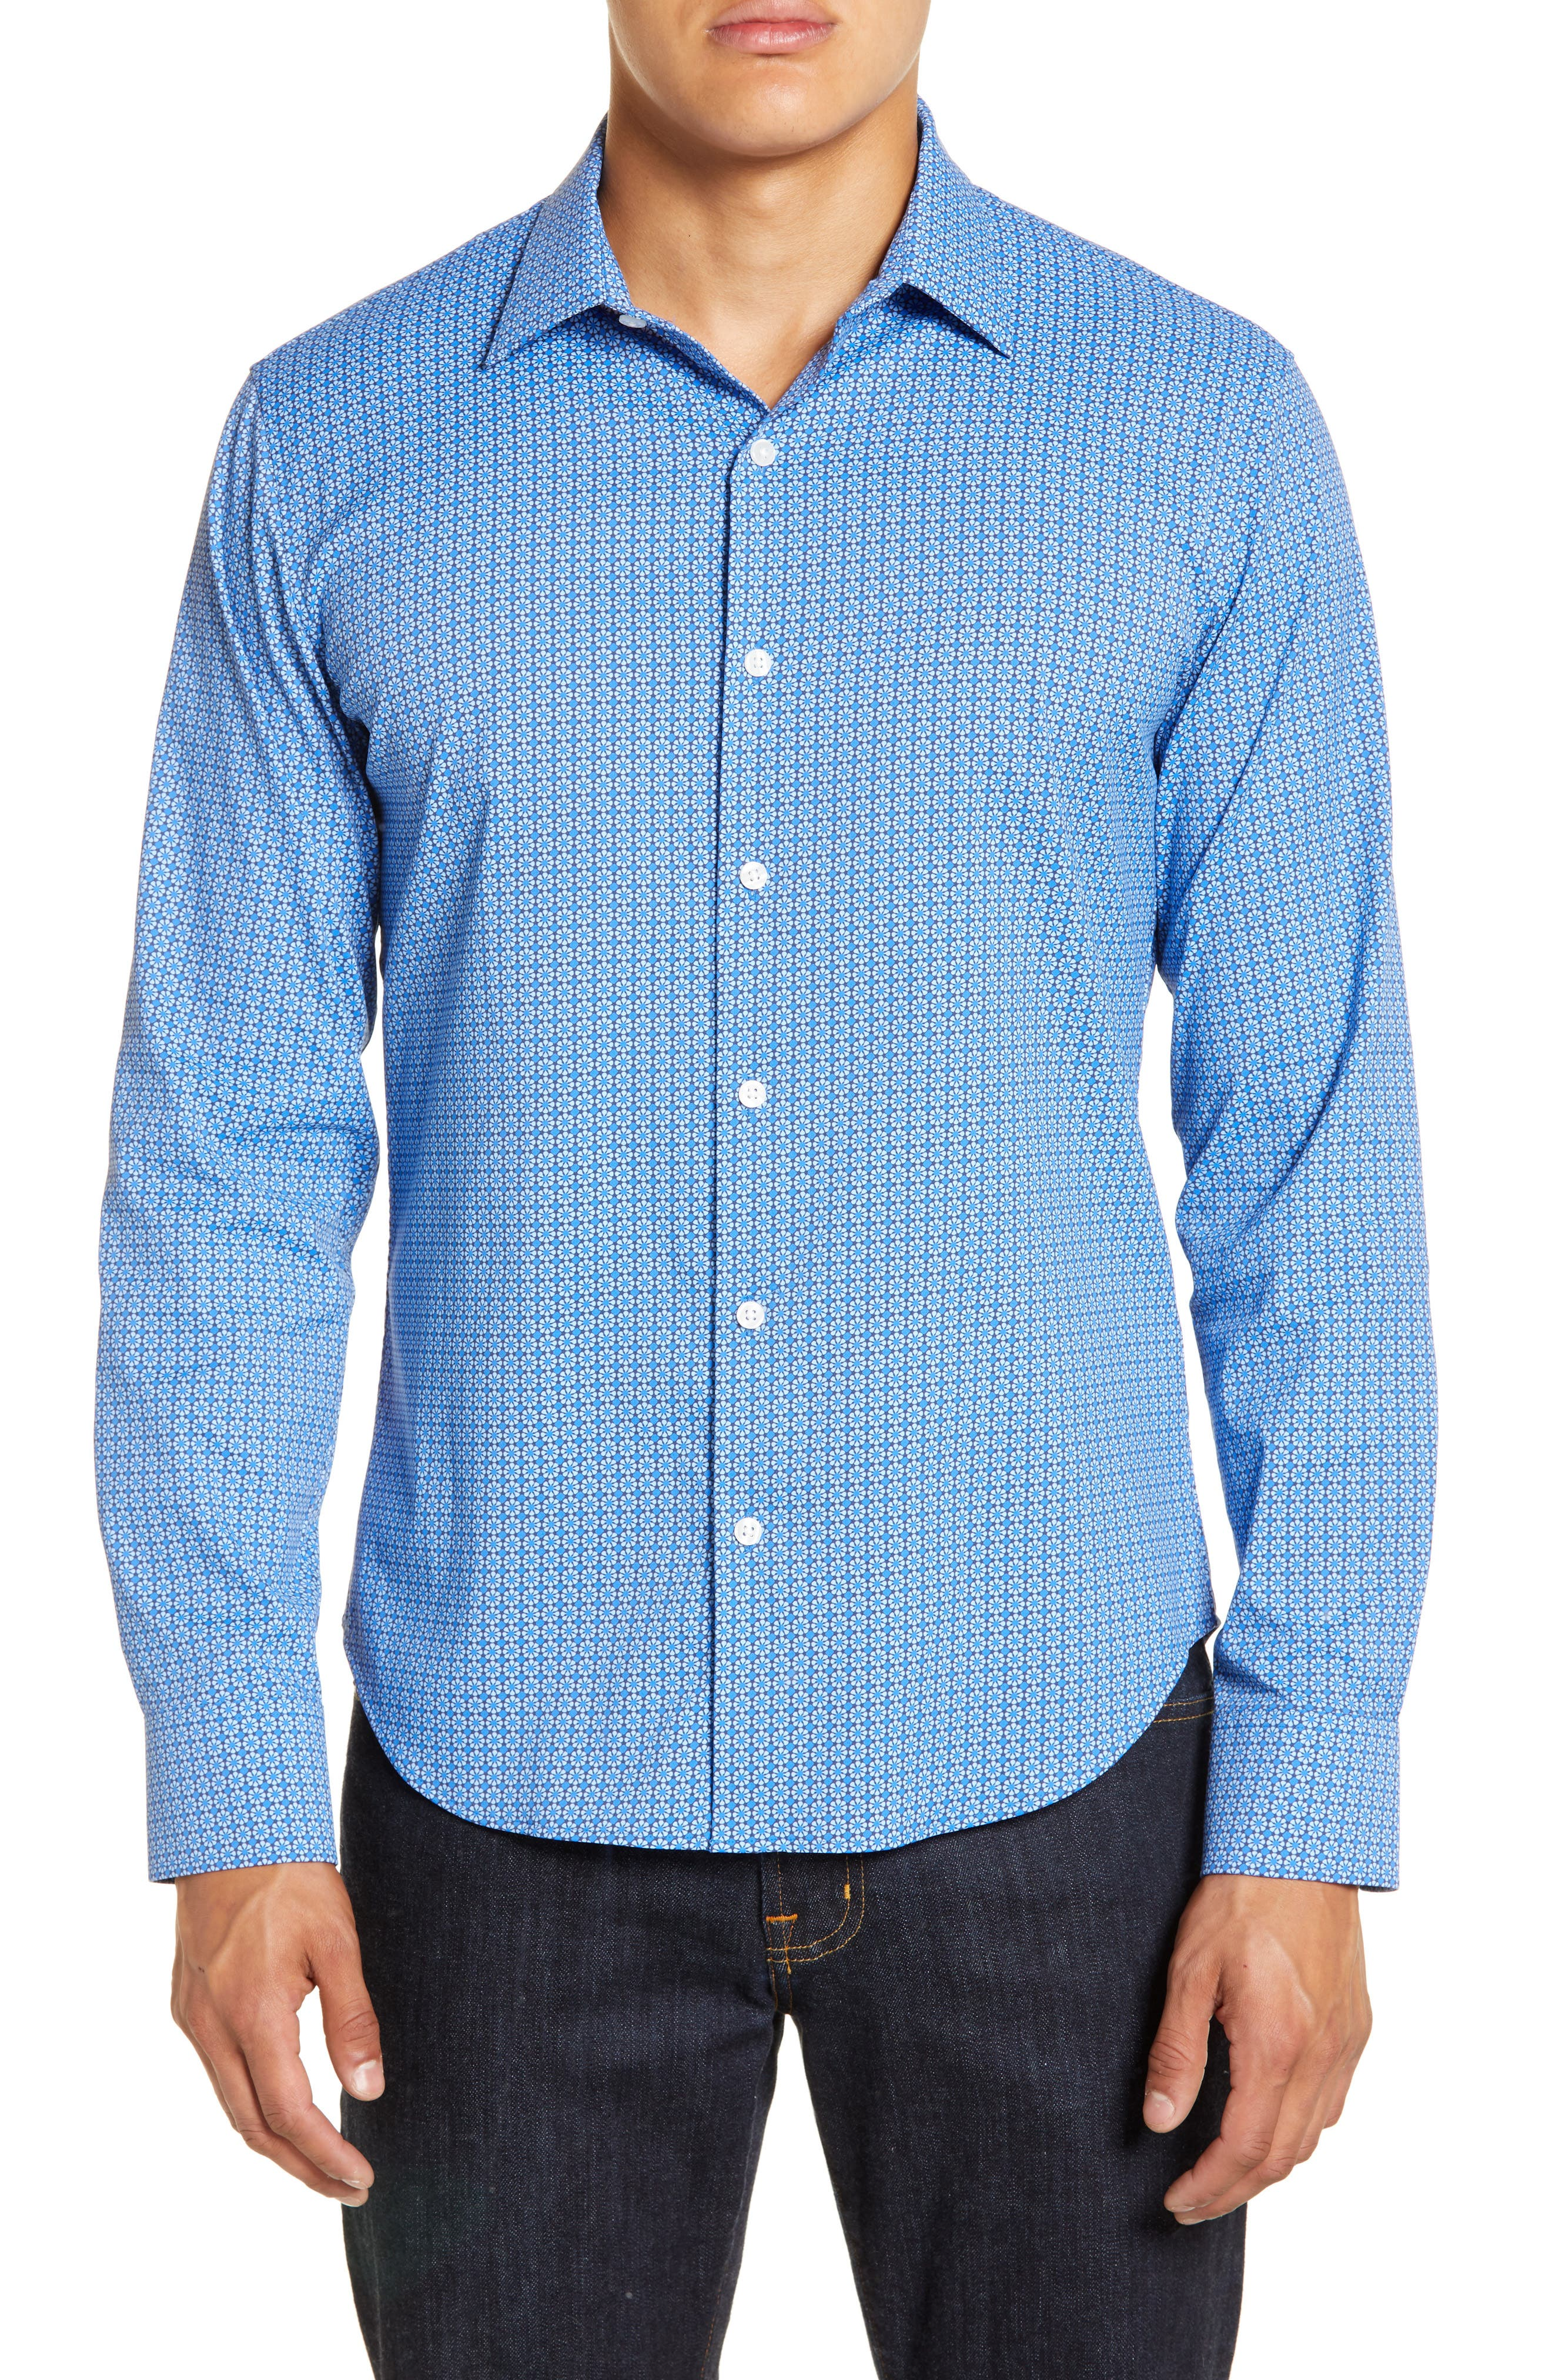 A classic design with a modern twist, this sport shirt comes in a tile-inspired pattern and is made of lightweight stretch fabric that fights sweat all day. Style Name: Bonobos Tech Slim Fit Print Button-Up Shirt. Style Number: 6058346. Available in stores.